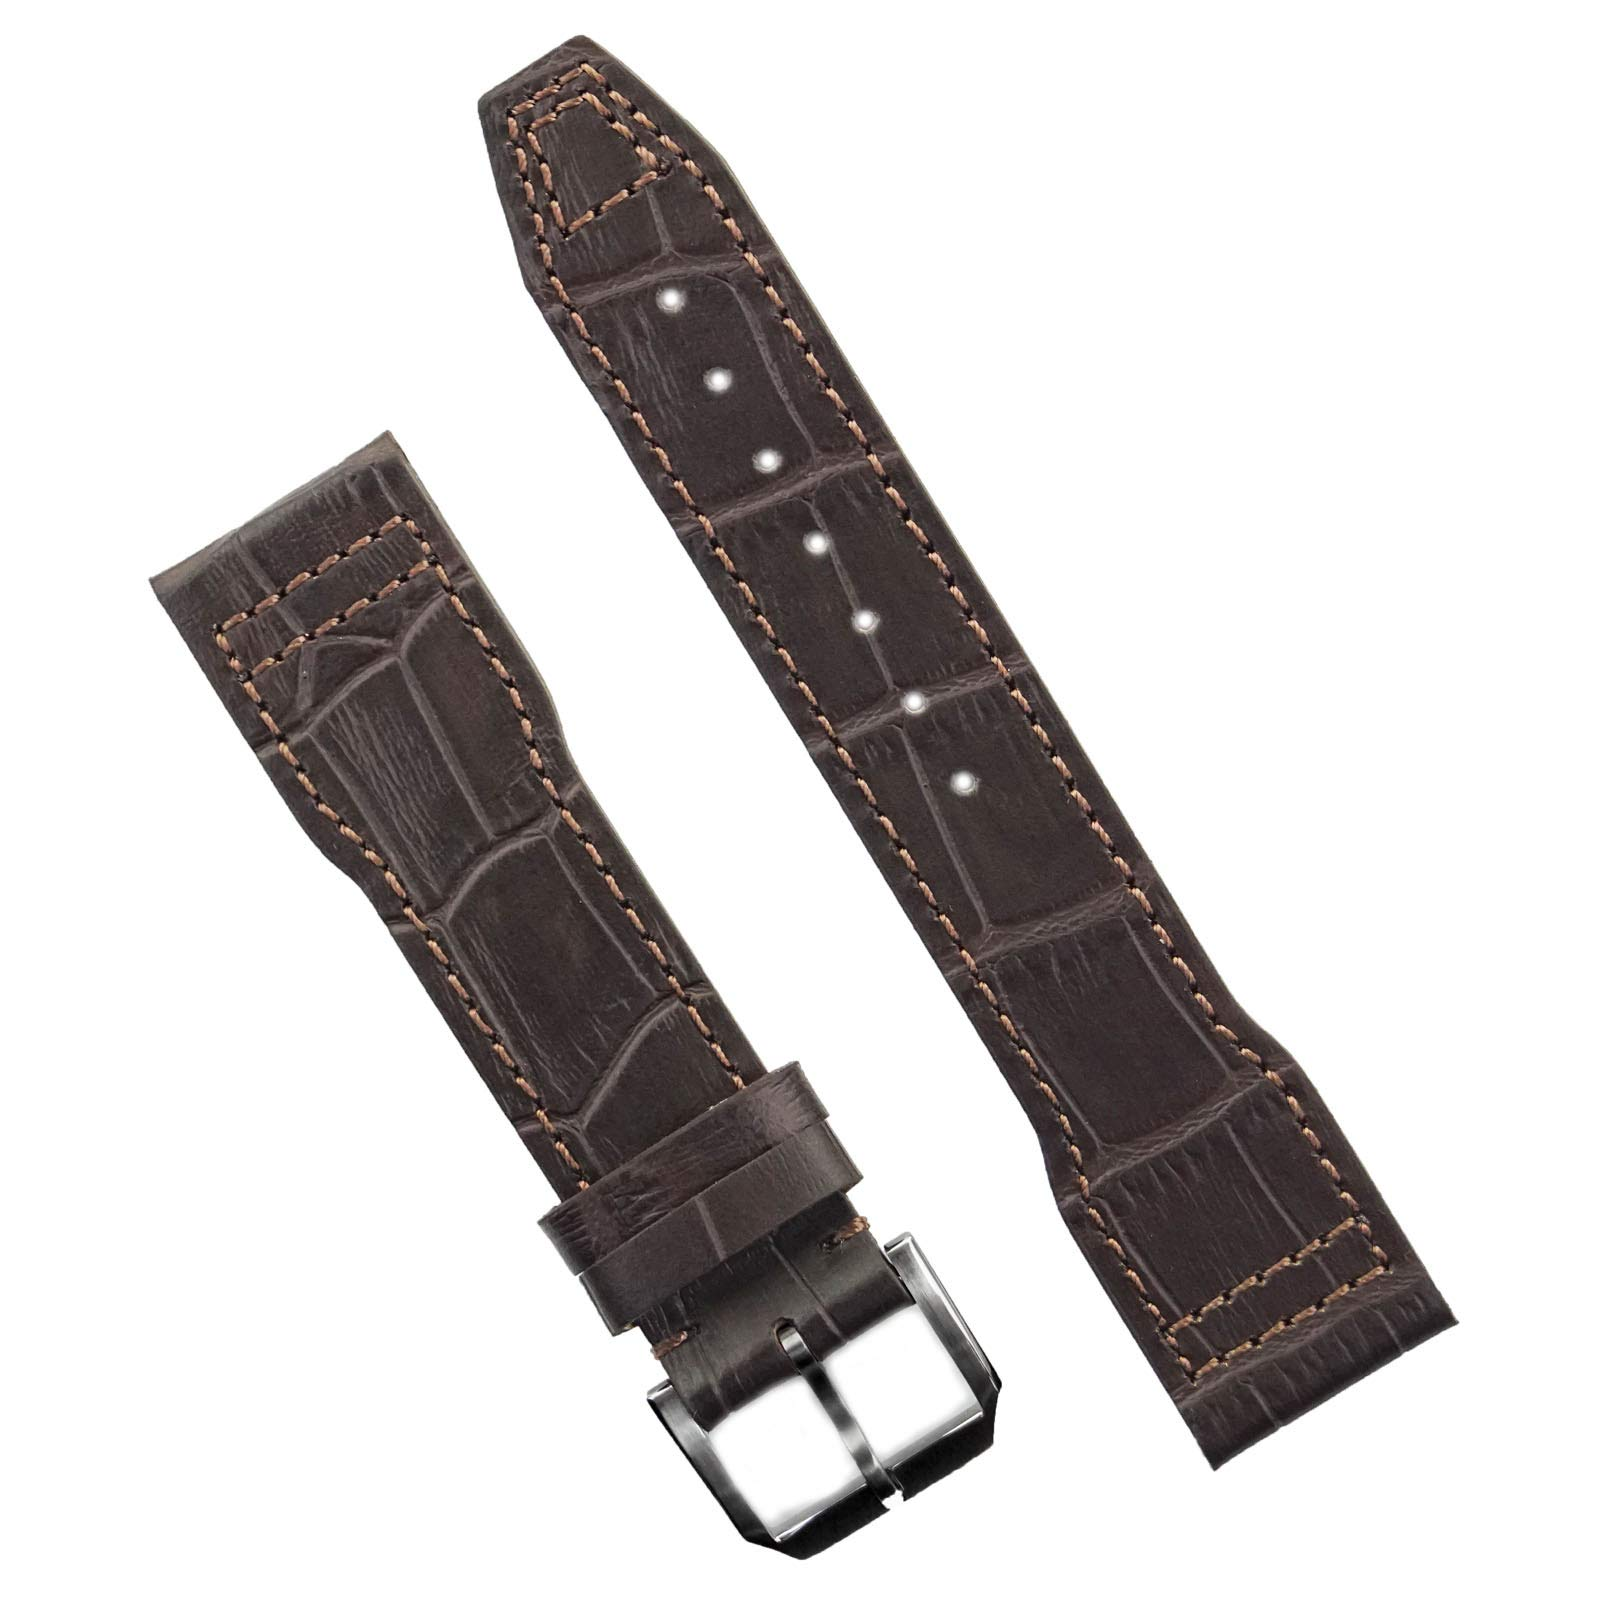 B & R Bands 20mm Brown Gator Leather IWC Pilot Style Watch Band Strap